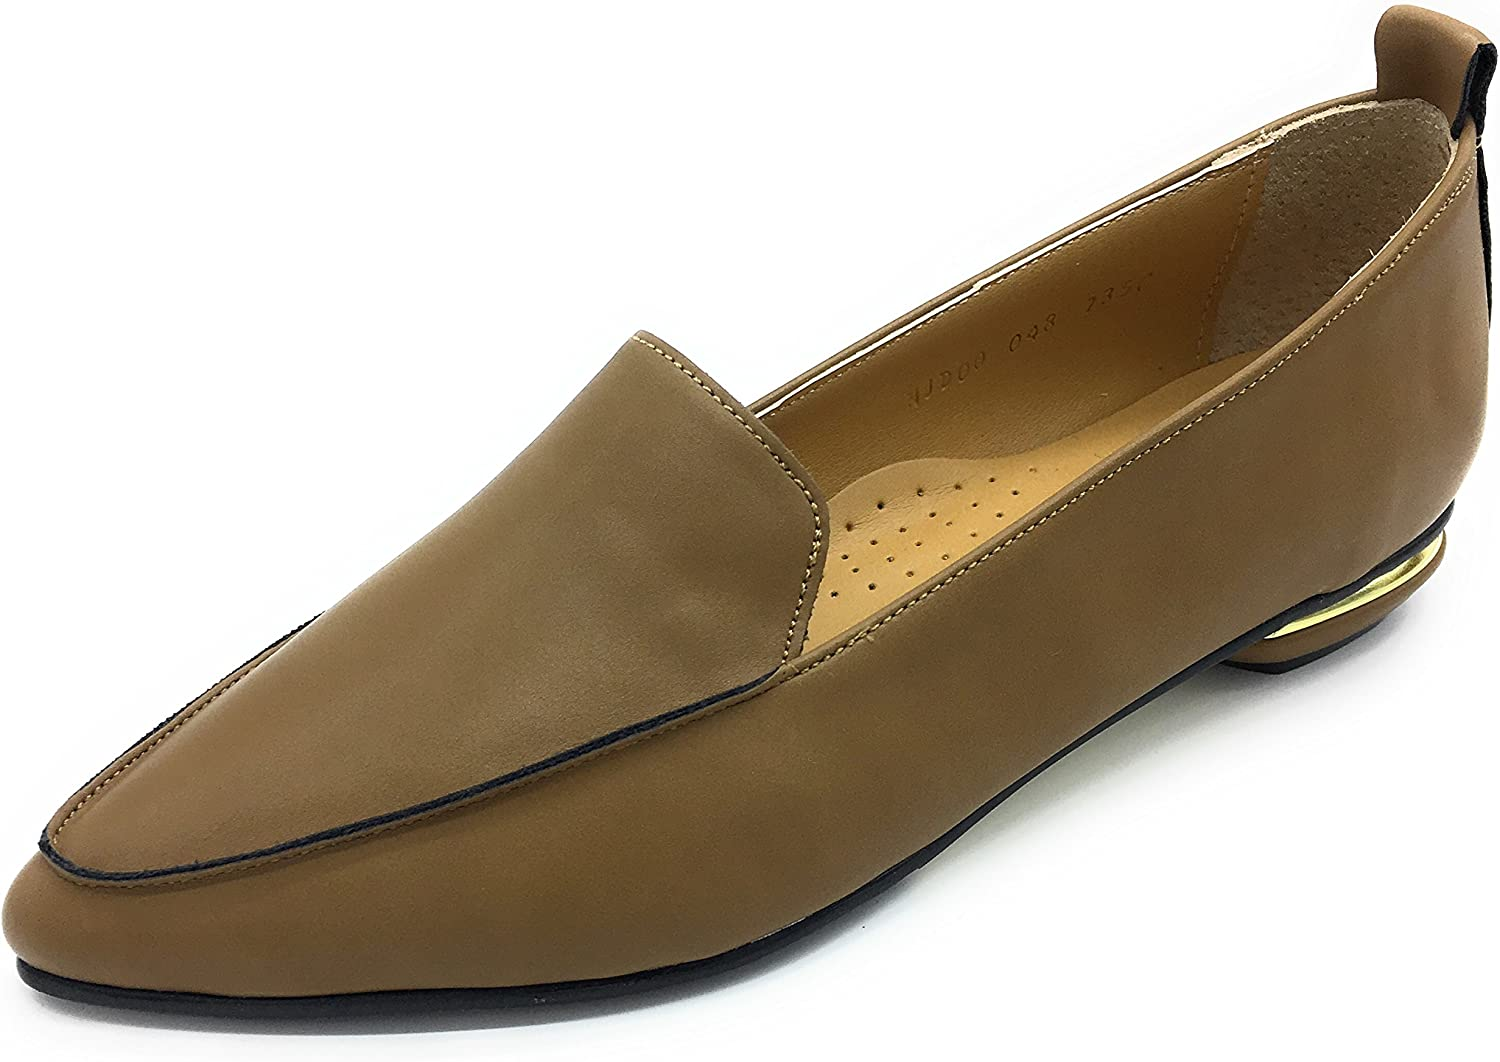 DaVinci Womens Loafer Low-Heel with gold Detailed